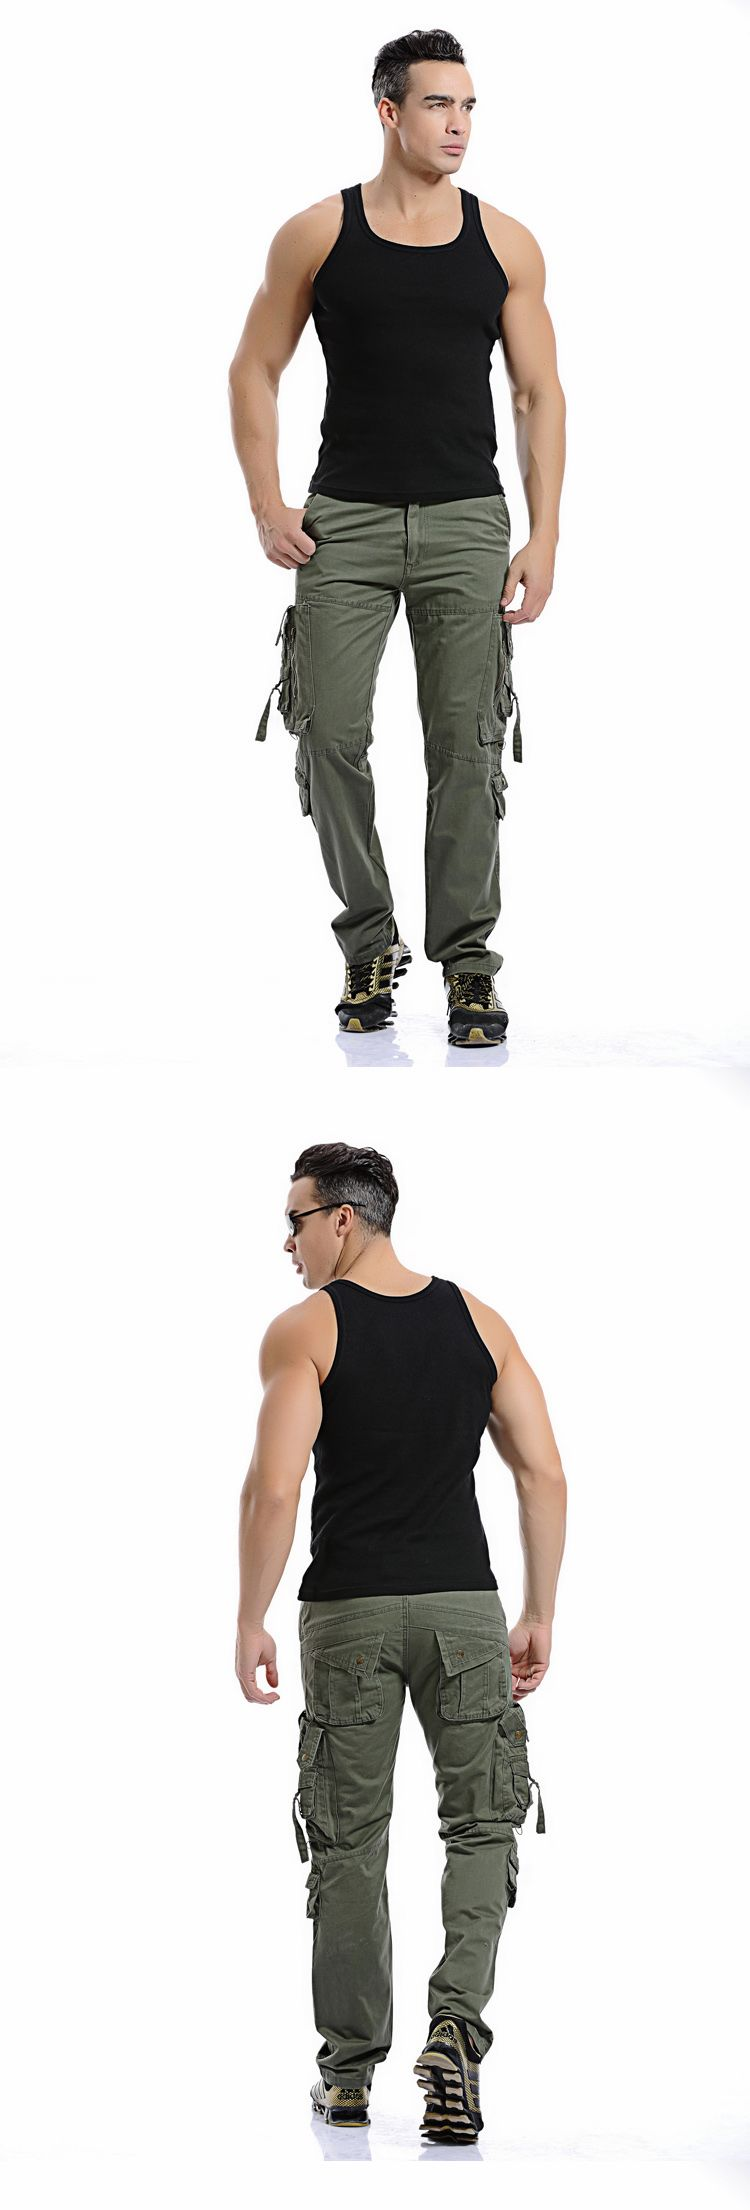 MIXCUBIC 2019 spring Autumn army tactical pants Multi-pocket washing loose army green cargo pants men casual Tooling pants 28-42 4